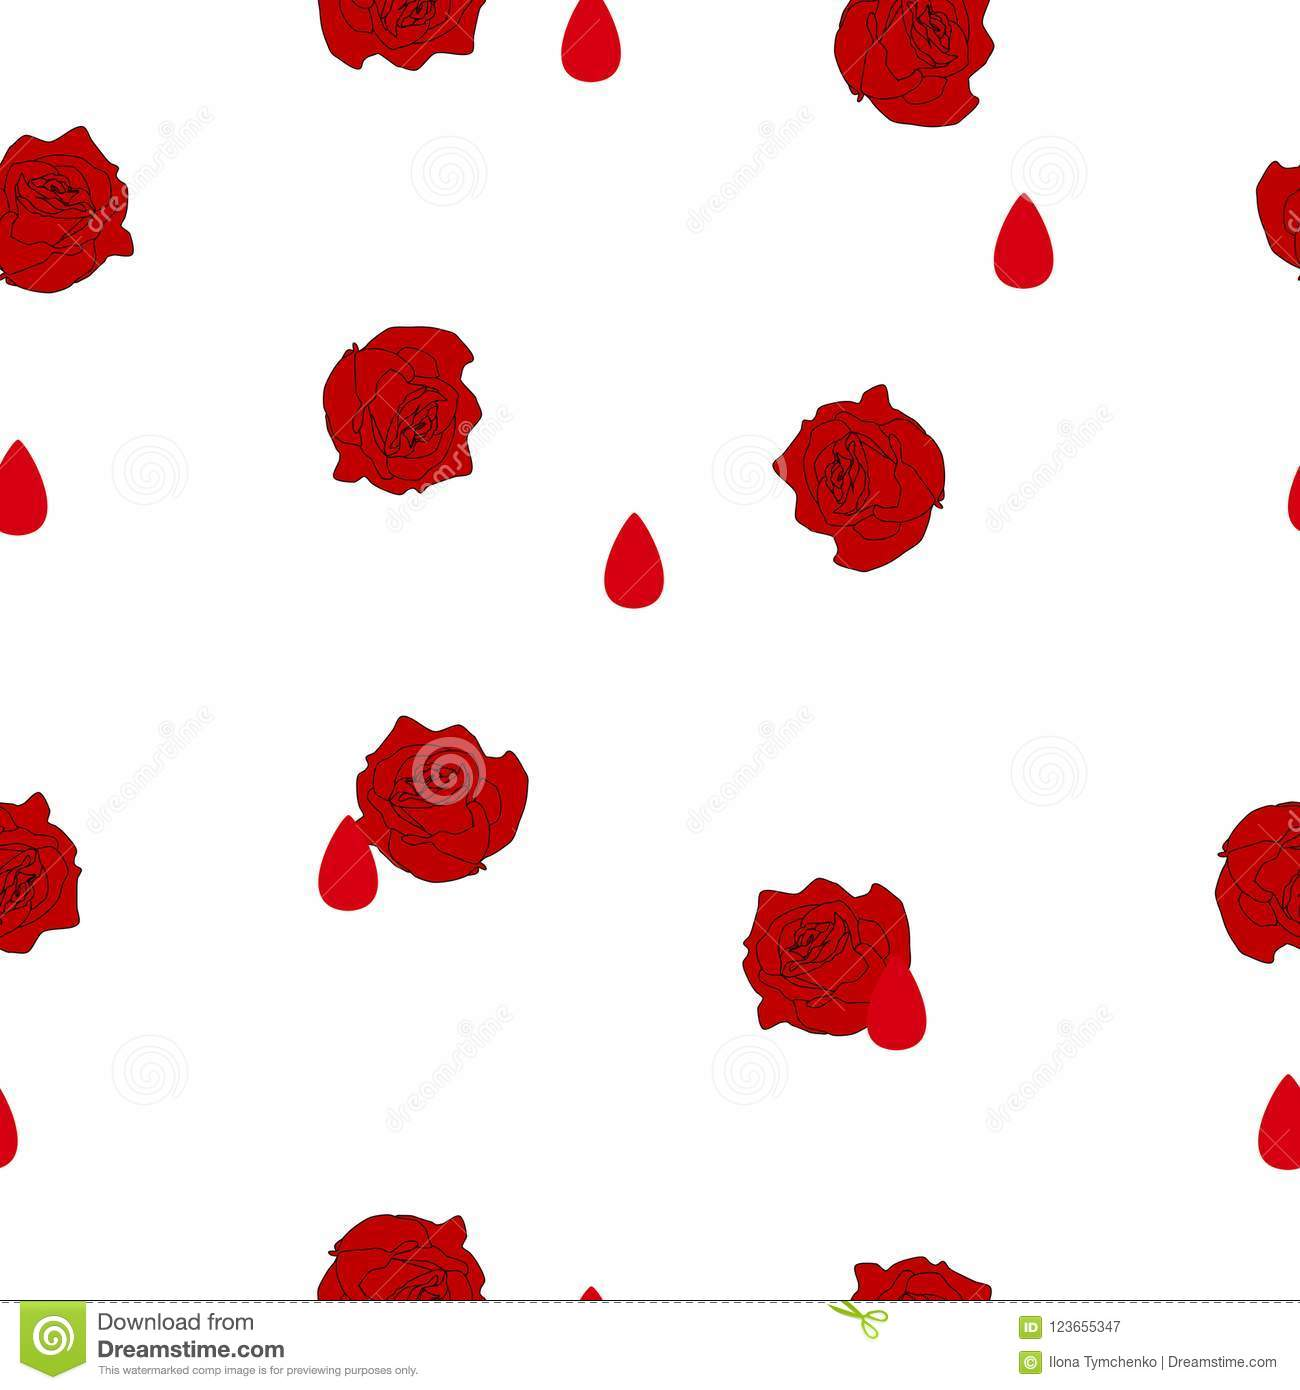 Seamless pattern red rose flower blood drop on white vector stock abstract seamless pattern small red roses flowers and blood drops on white background halloween illustration ornament concept life and death pretty modern mightylinksfo